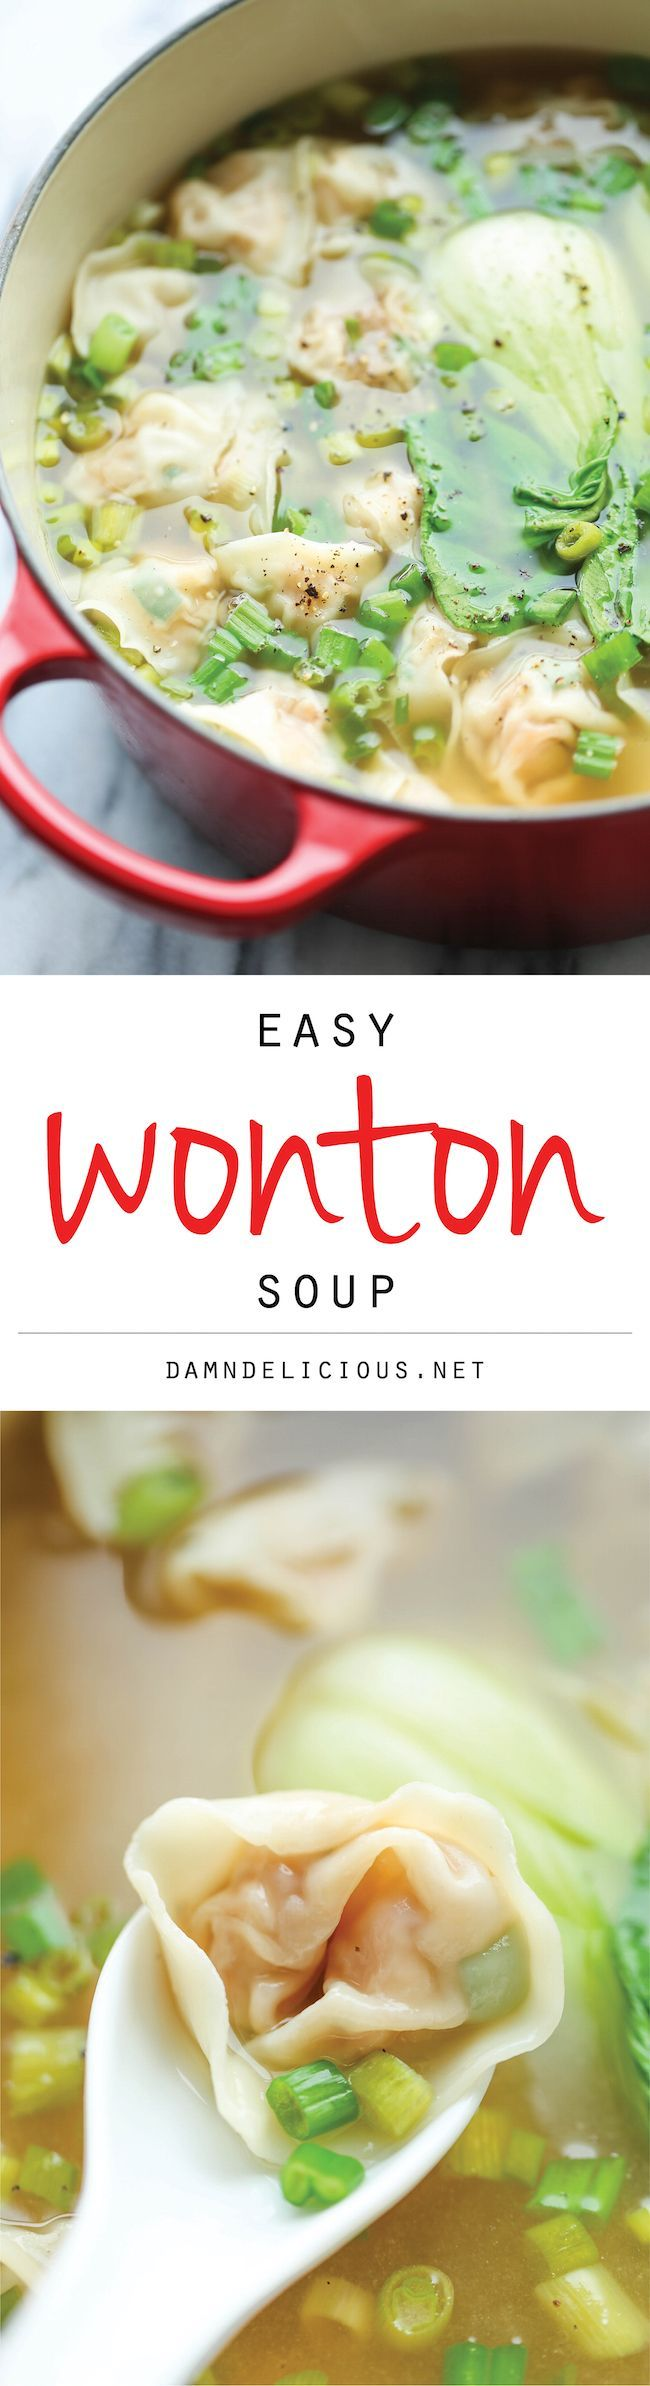 Wonton Soup - A super easy, light and comforting wonton soup that you can make right at home - and it tastes 1000x better than ordering out! (scheduled via http://www.tailwindapp.com?utm_source=pinterest&utm_medium=twpin&utm_content=post896823&utm_campaign=scheduler_attribution)